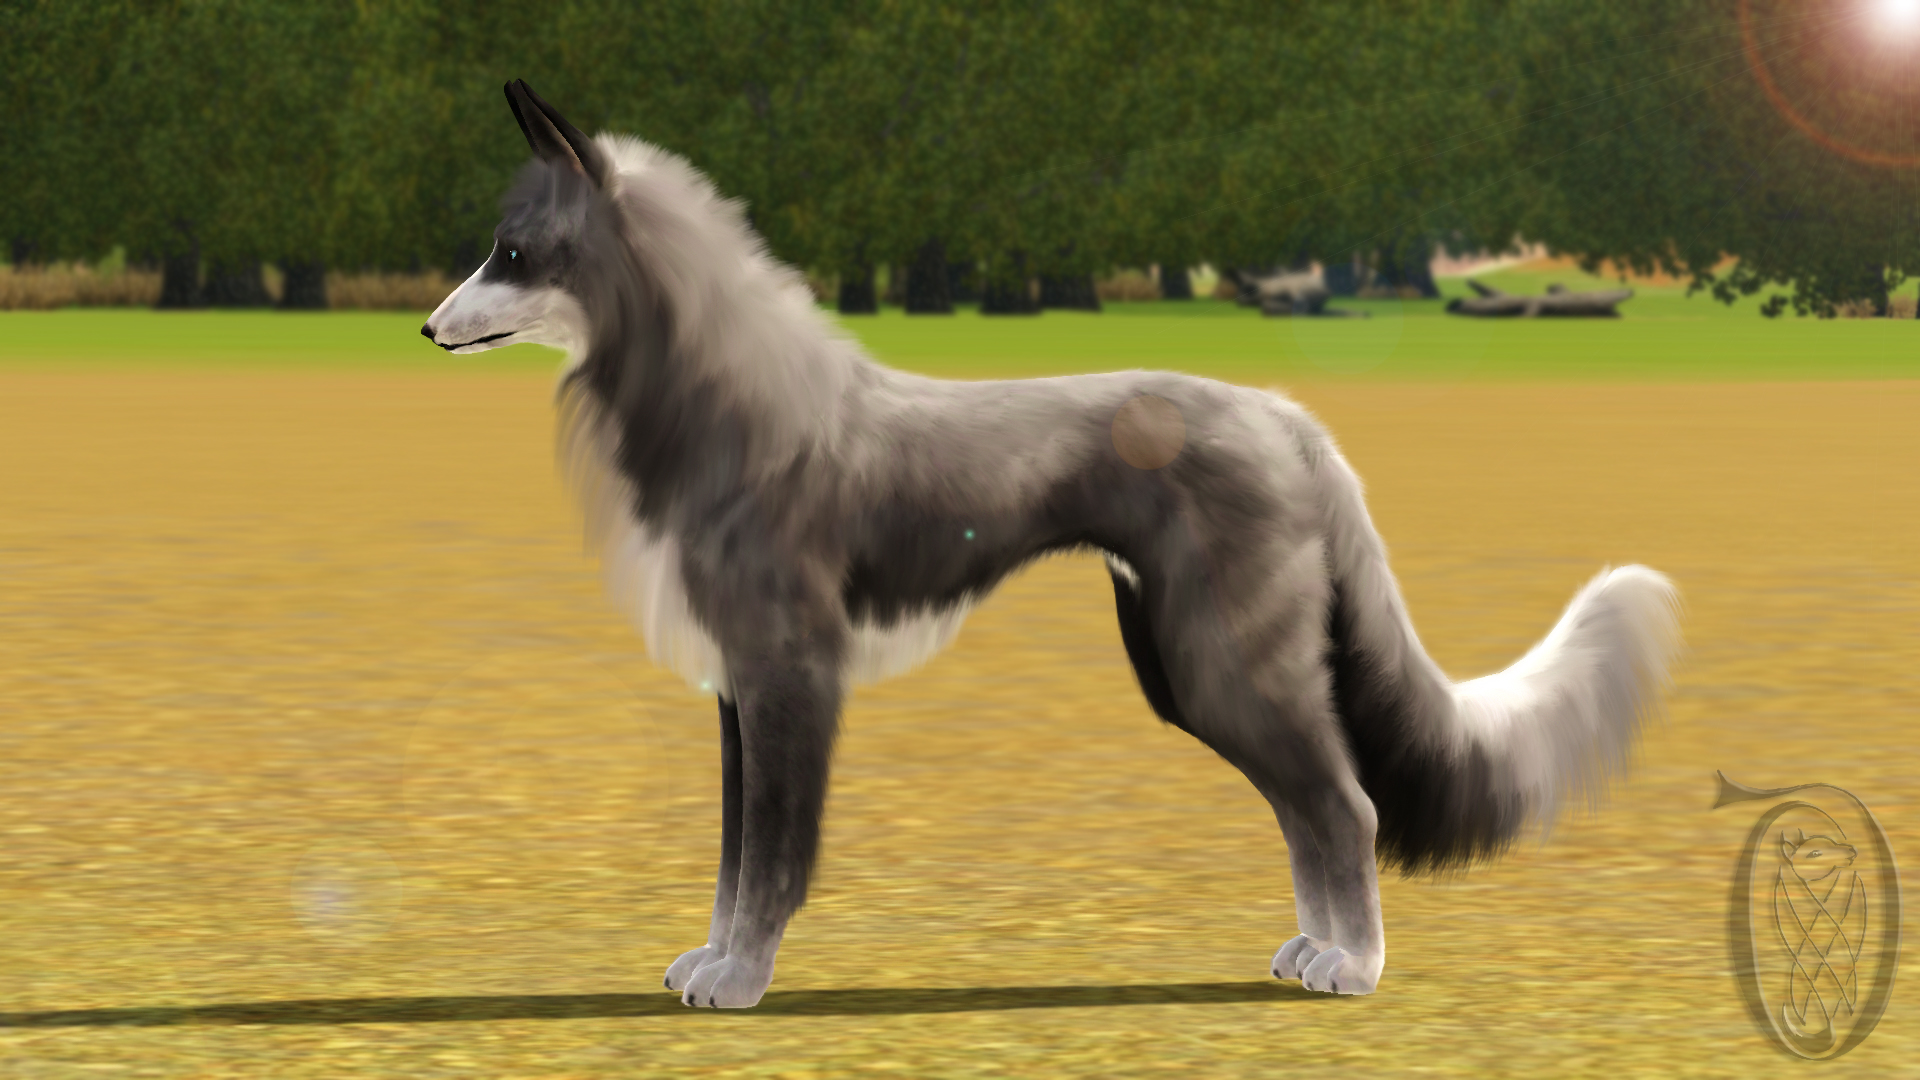 Pin images blue merle border collie dekreu reu wallpaper on pinterest -  16 Sims 3 Pets Bii Ilit Krahviik By Spiritythedragon On Deviantart